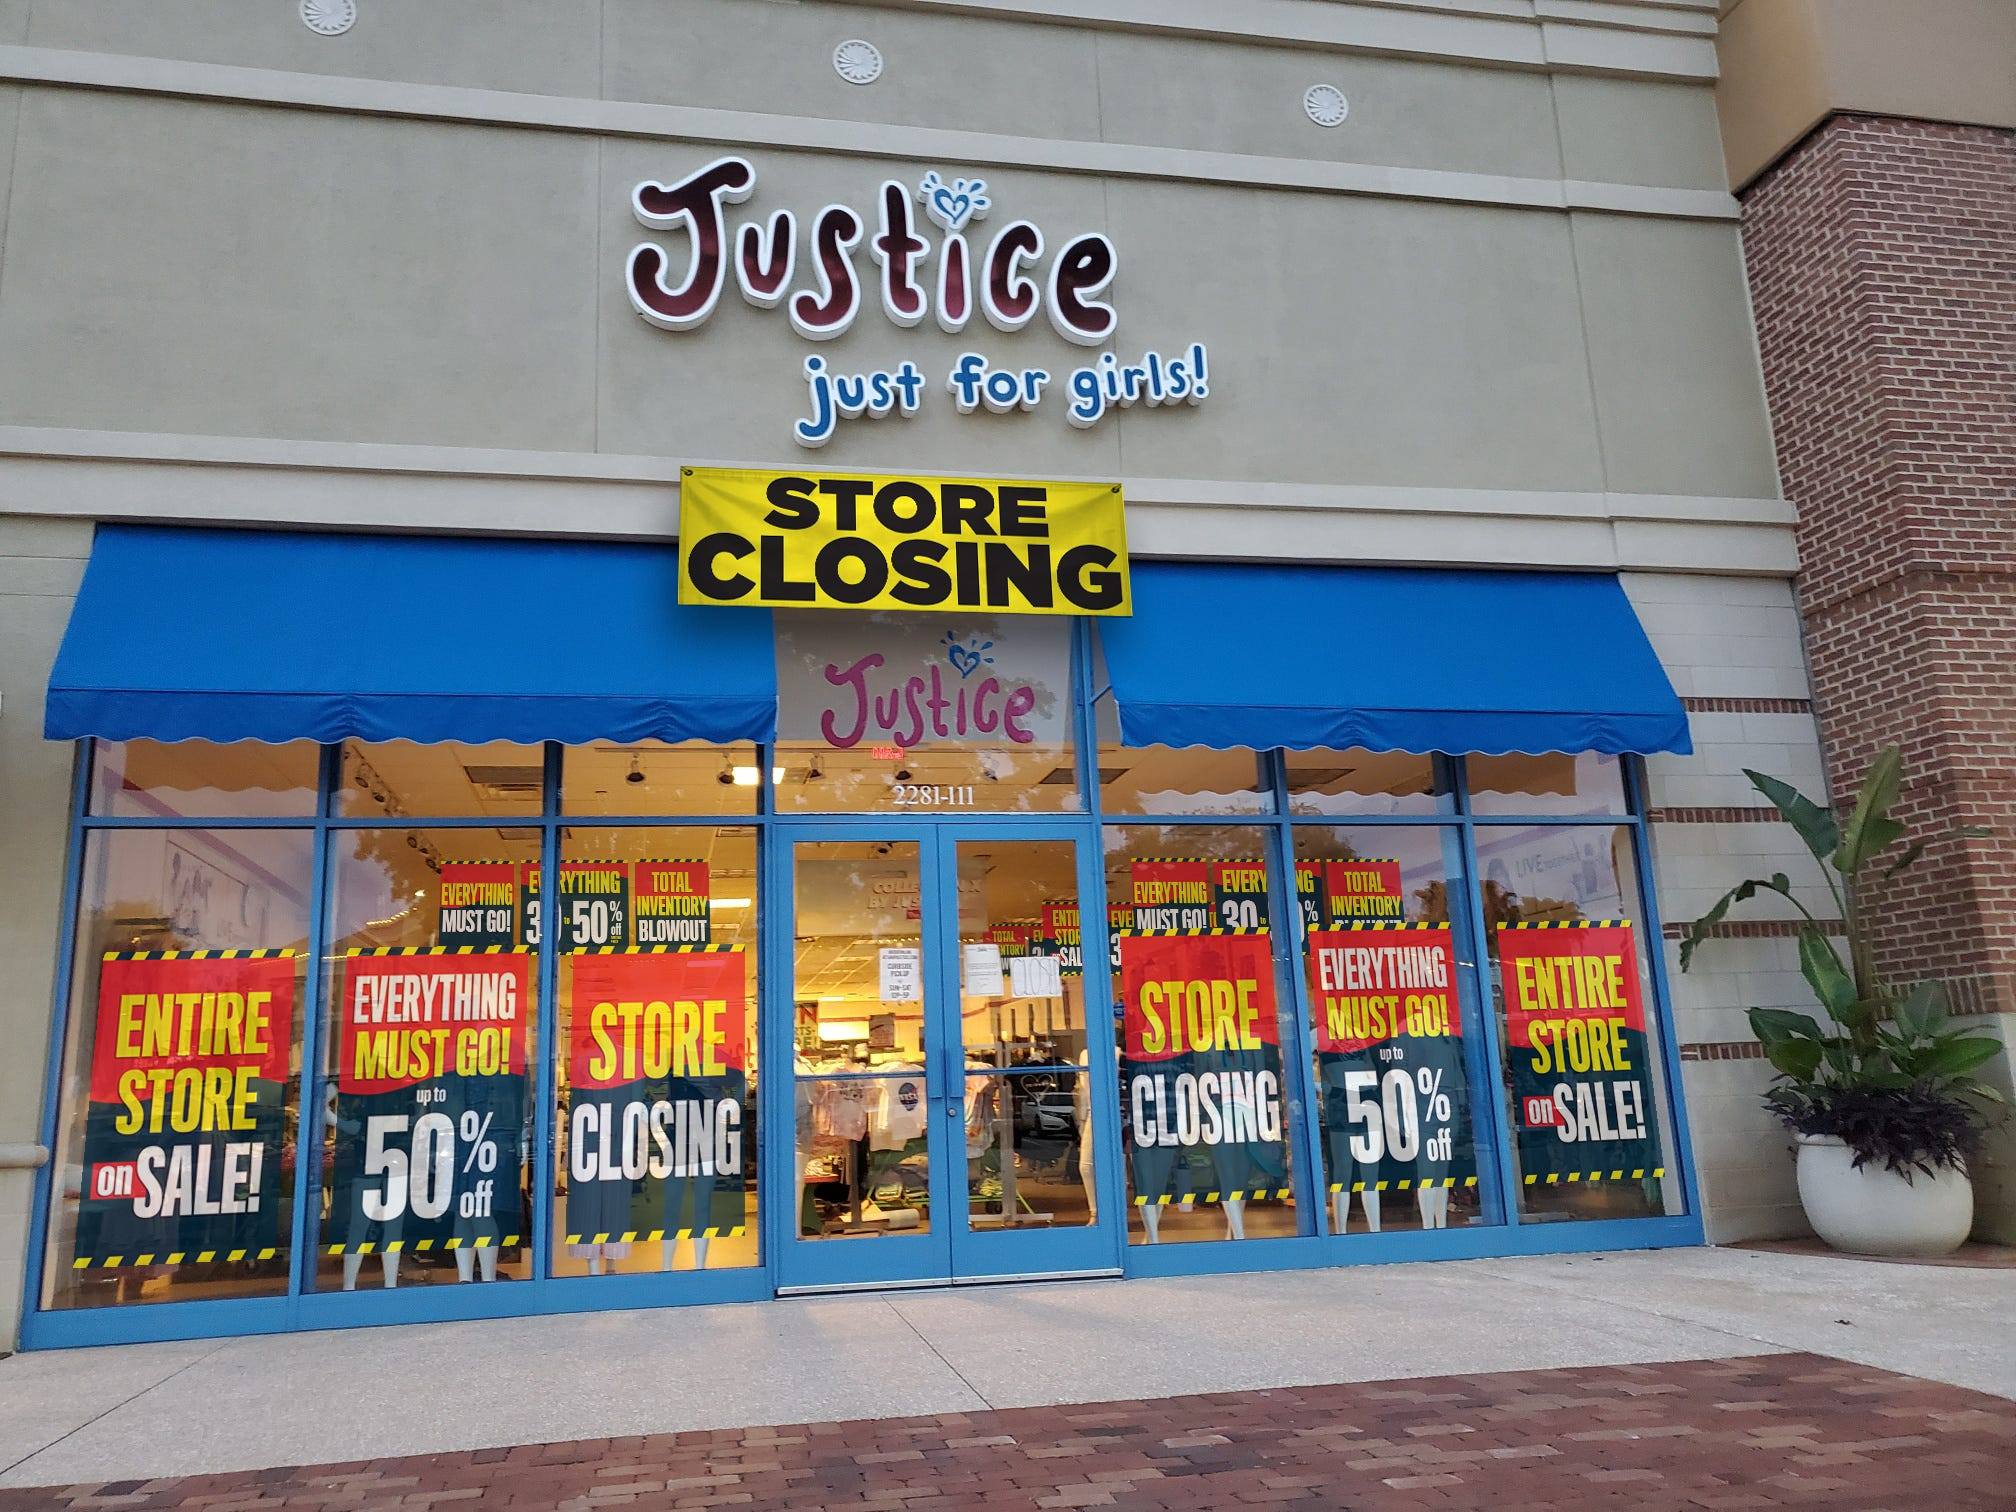 See full list of tween stores closing